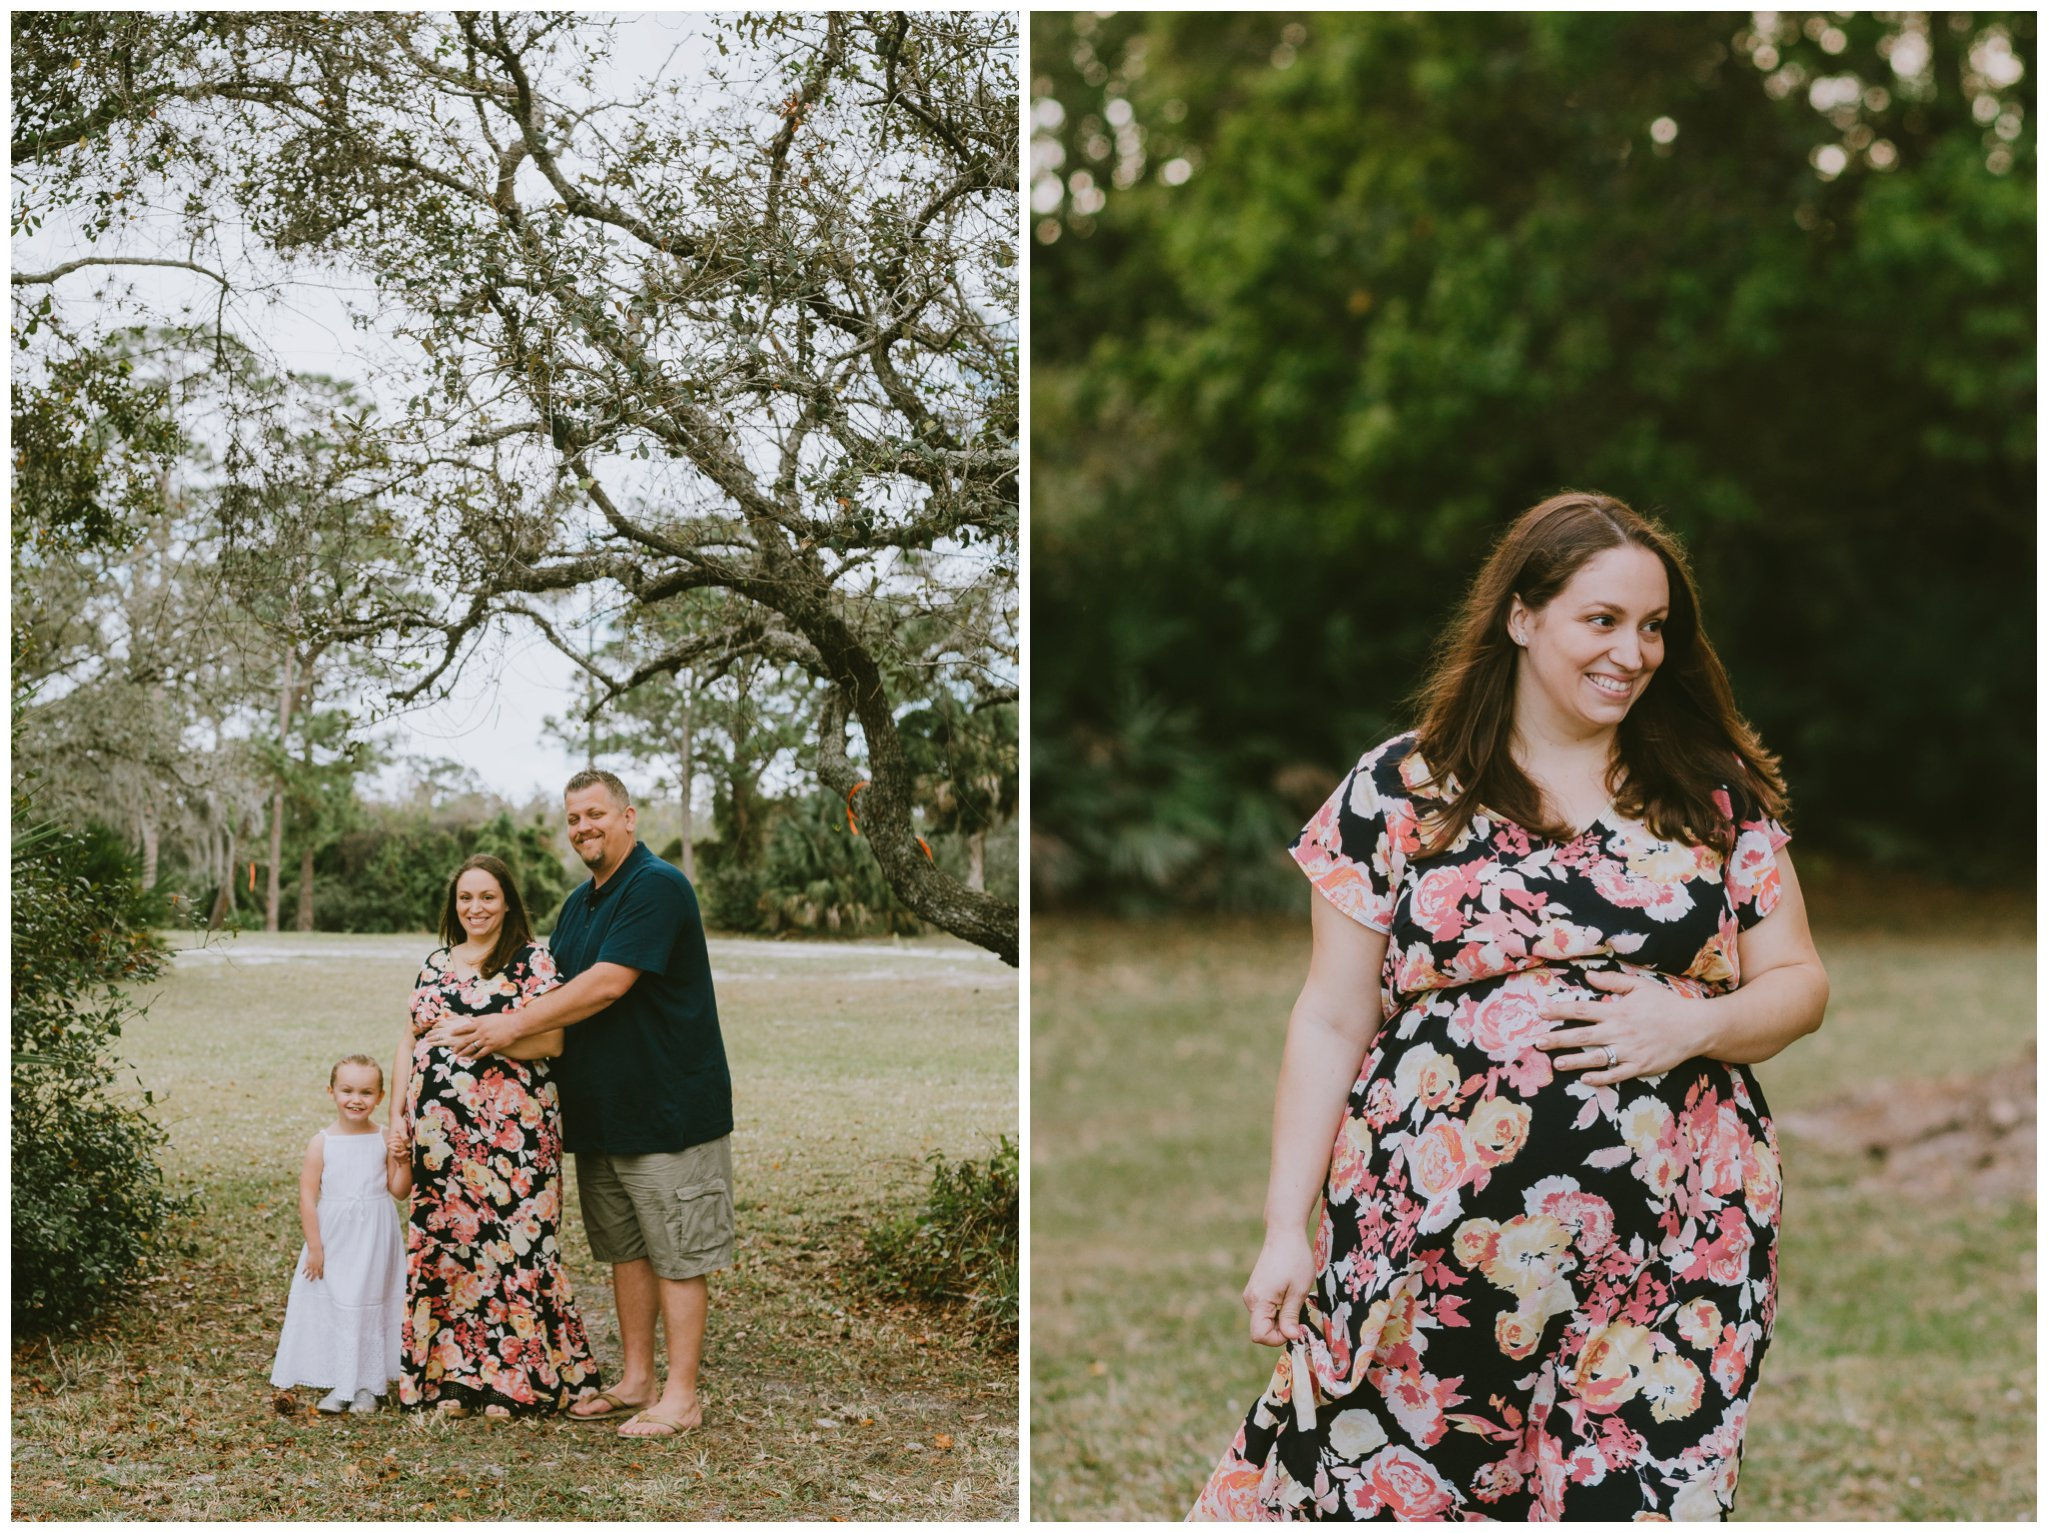 Kimberly Smith Photography| Port St Lucie Botanical Gardens| Maternity Photos| Jupiter Florida Photographer | Stuart Fl photographer_0208.jpg